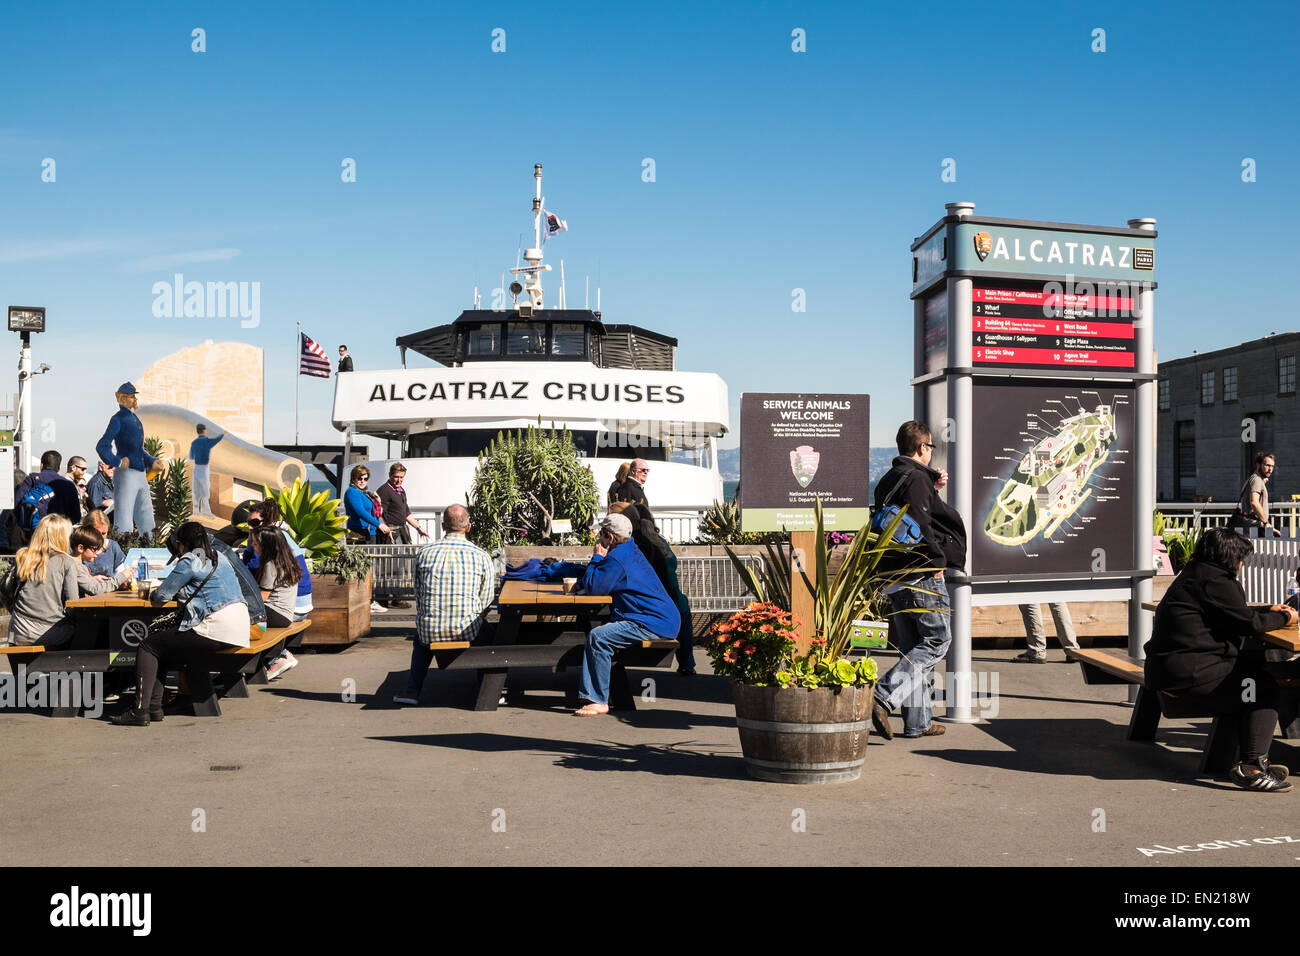 Waiting area on the key side for Alcatraz cruises with people in the foreground of the ferry boat to Alcatraz island - Stock Image